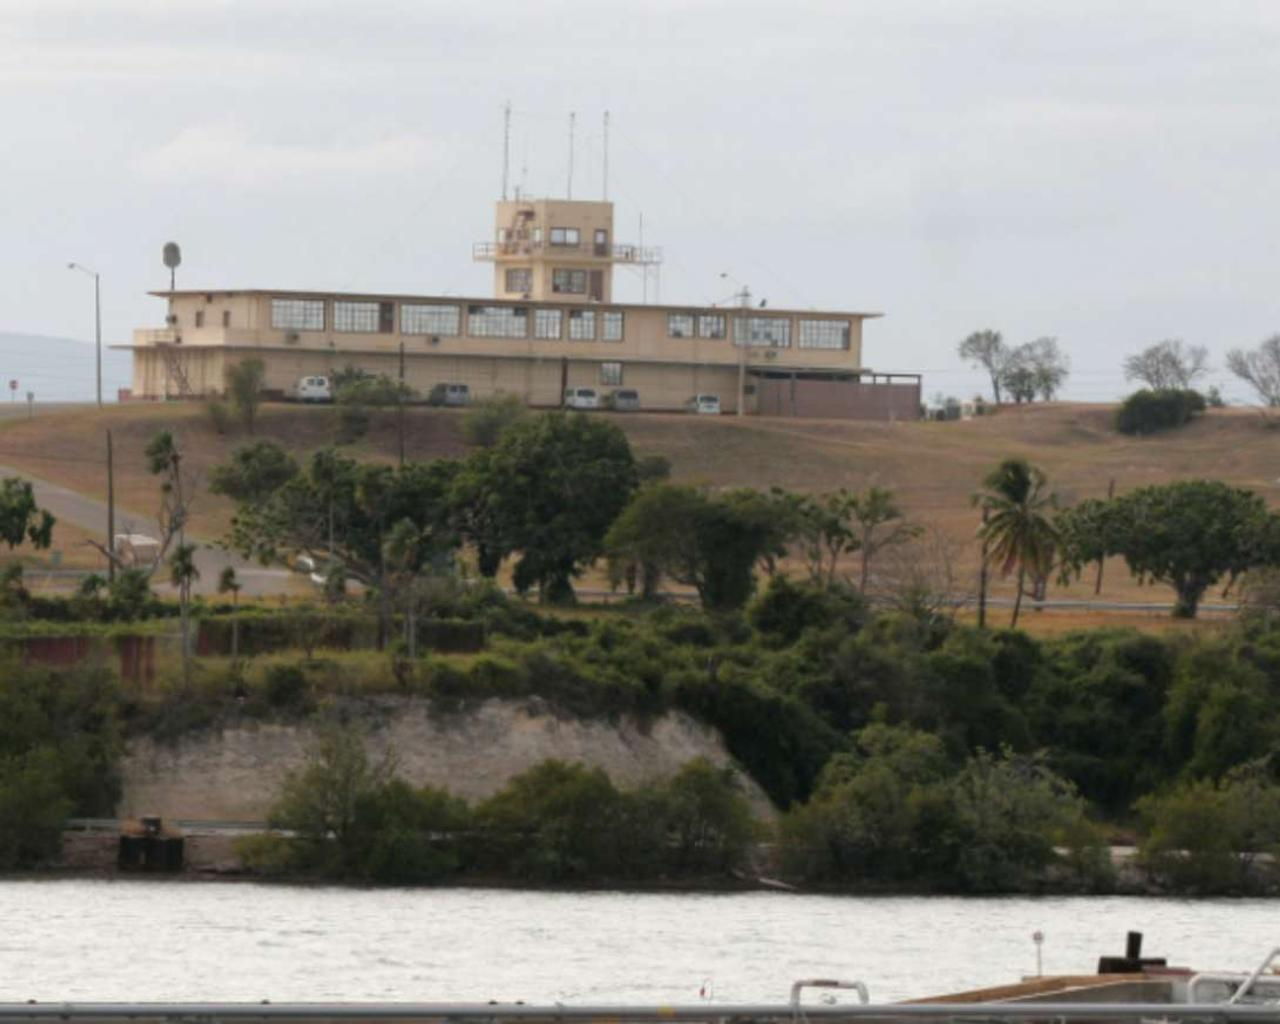 The U.S. Southern Command has reported the transfer of detainees to Guantanamo.